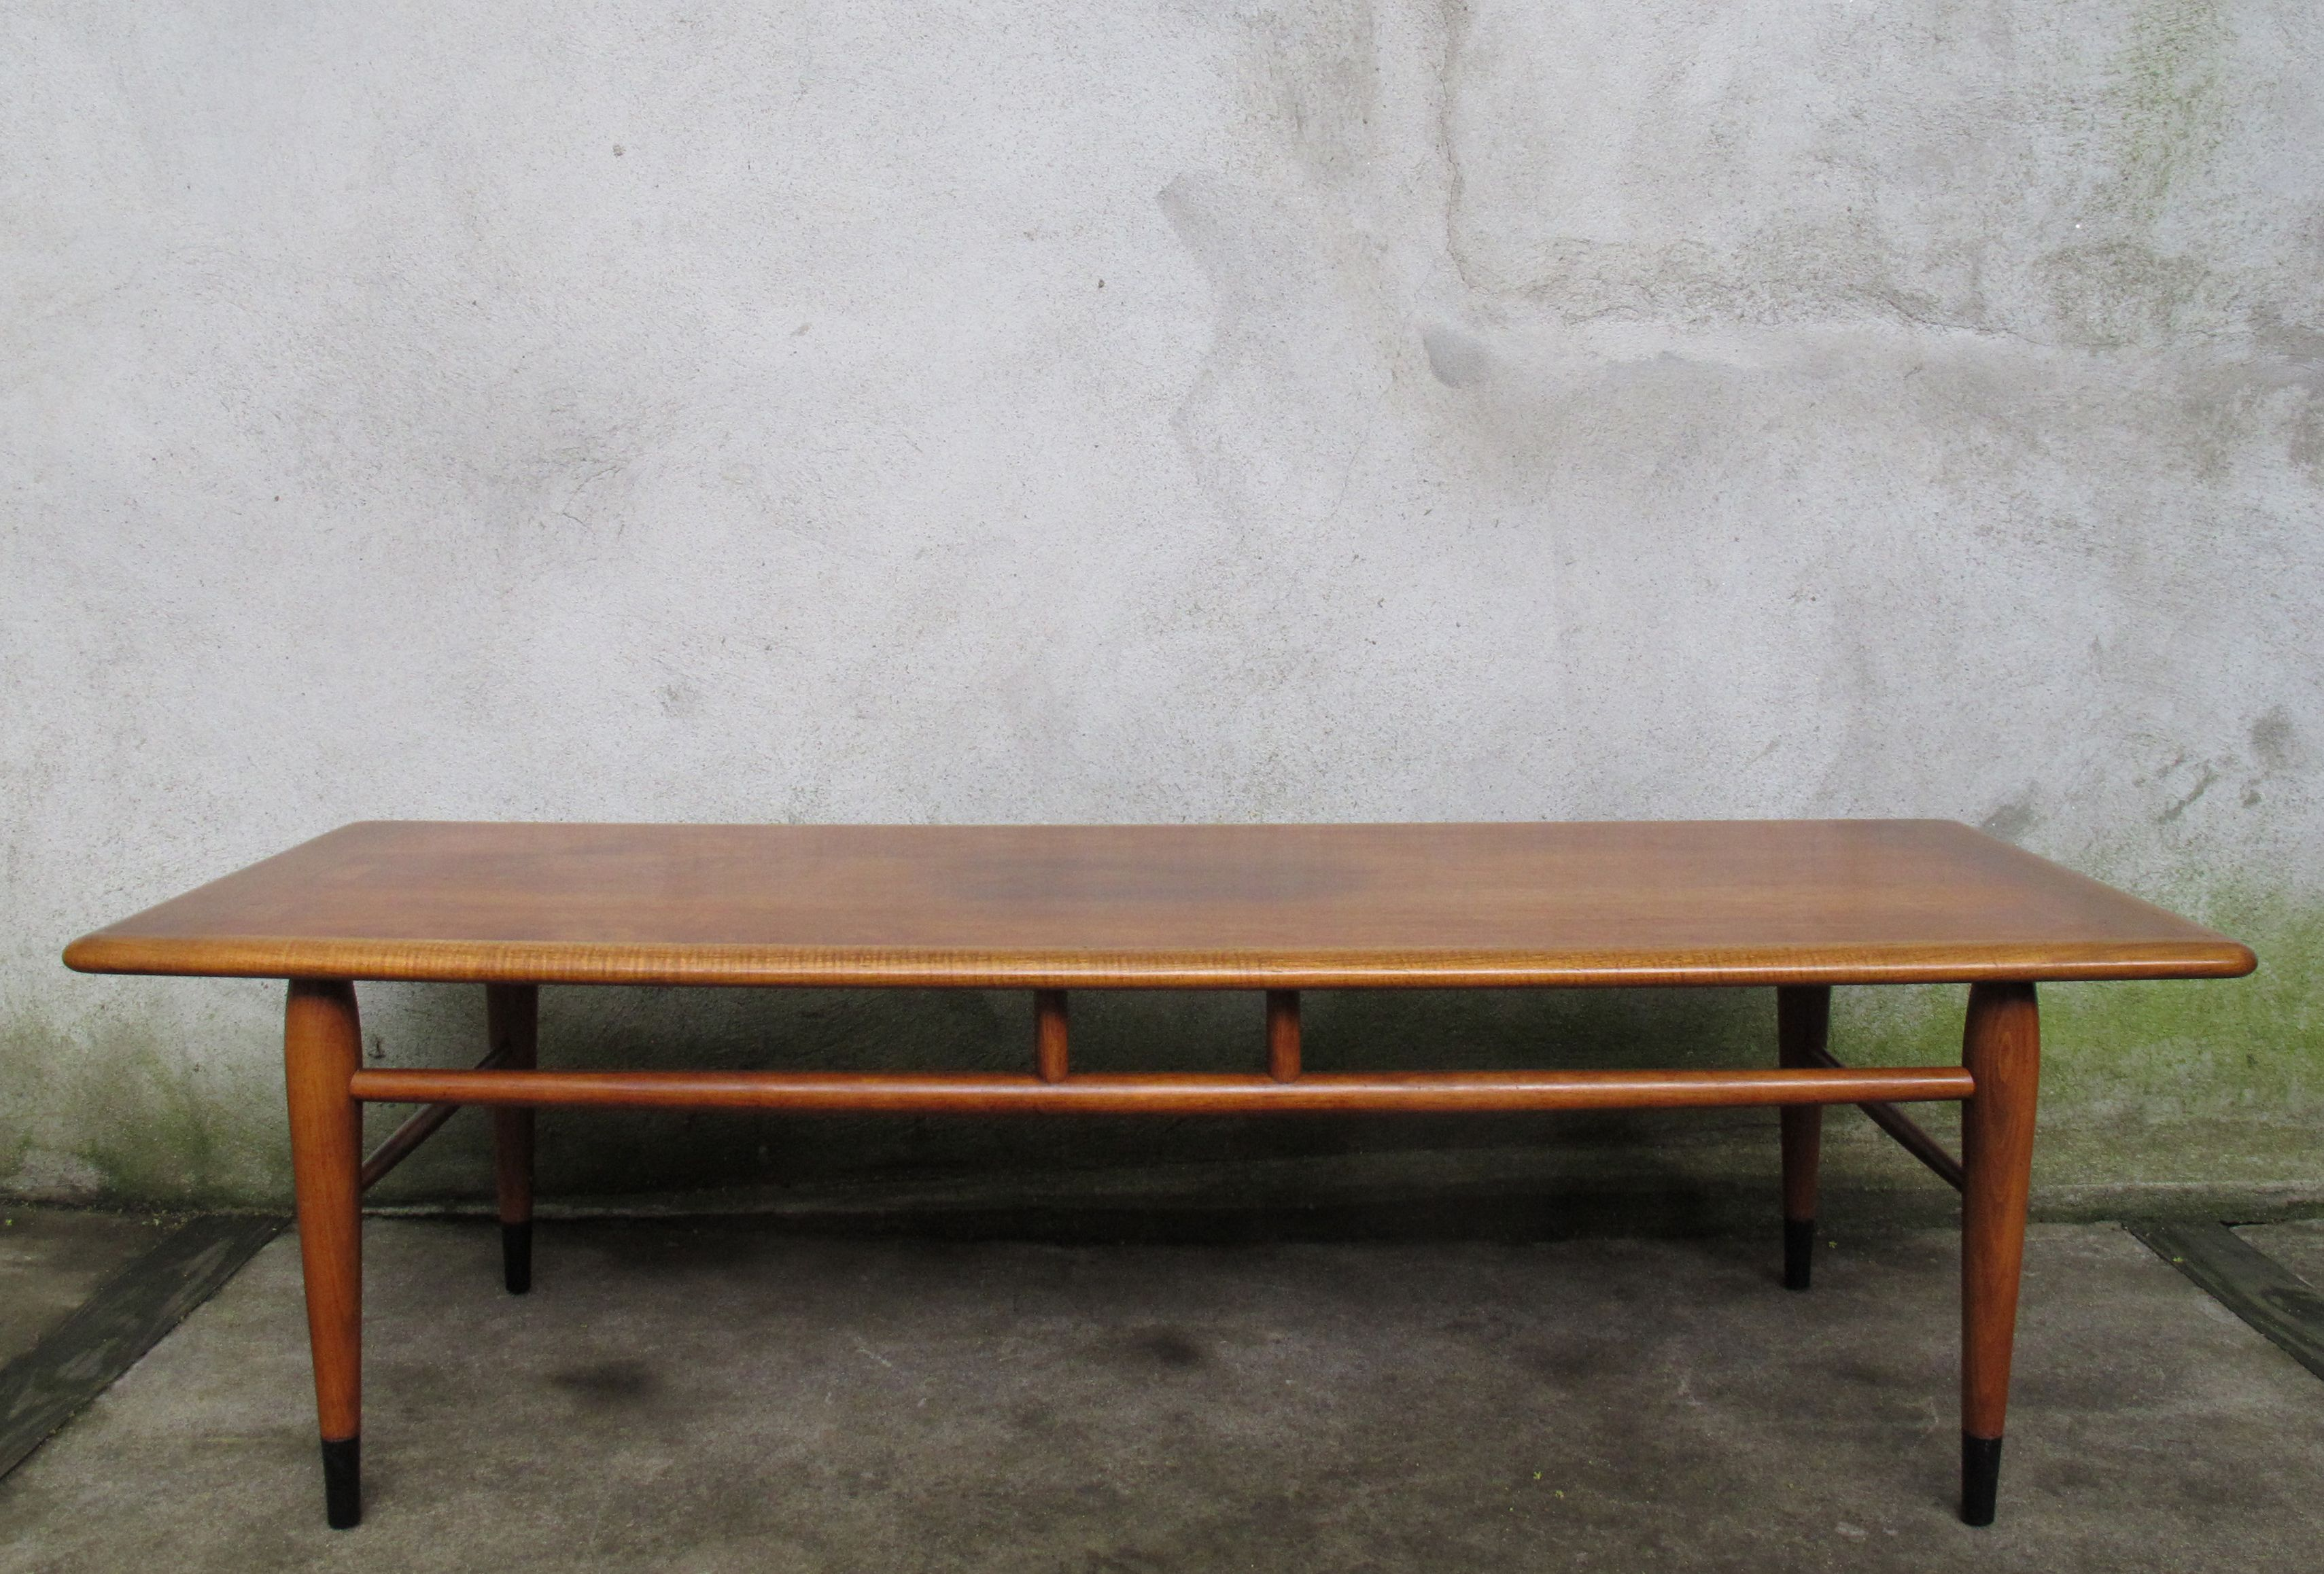 dd9f1057d3db8 LANE ACCLAIM MID CENTURY DOVETAIL COFFEE TABLE